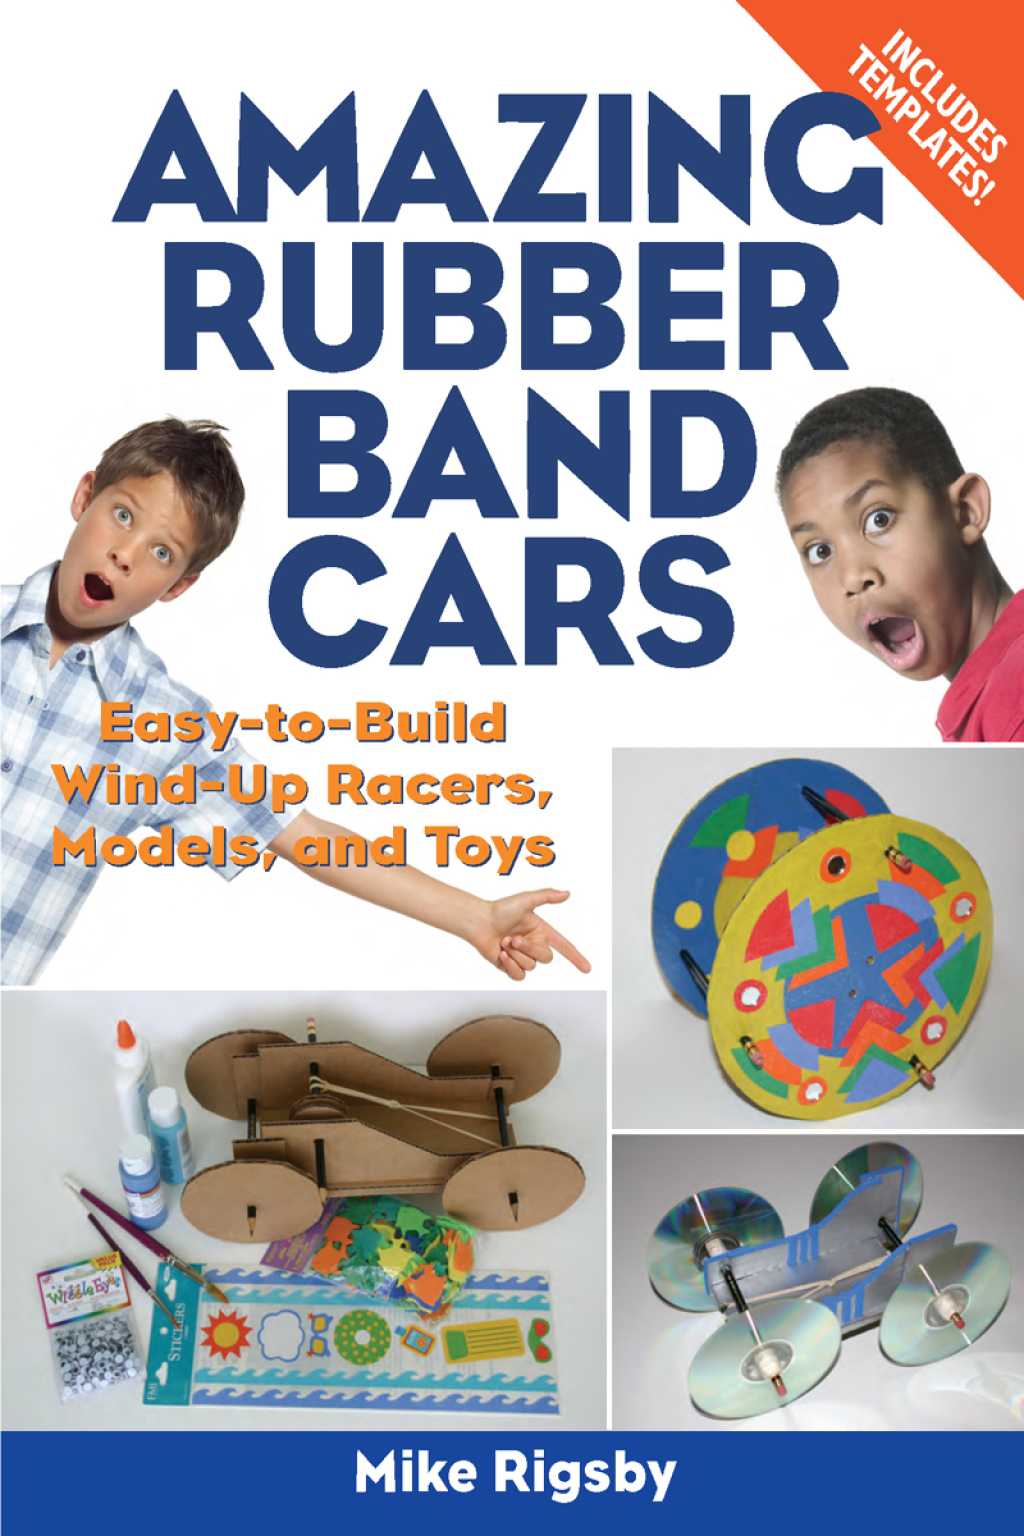 Amazing Rubber Band Cars: Easy-to-Build Wind-Up Racers, Models, and Toys (ebook) eBooks